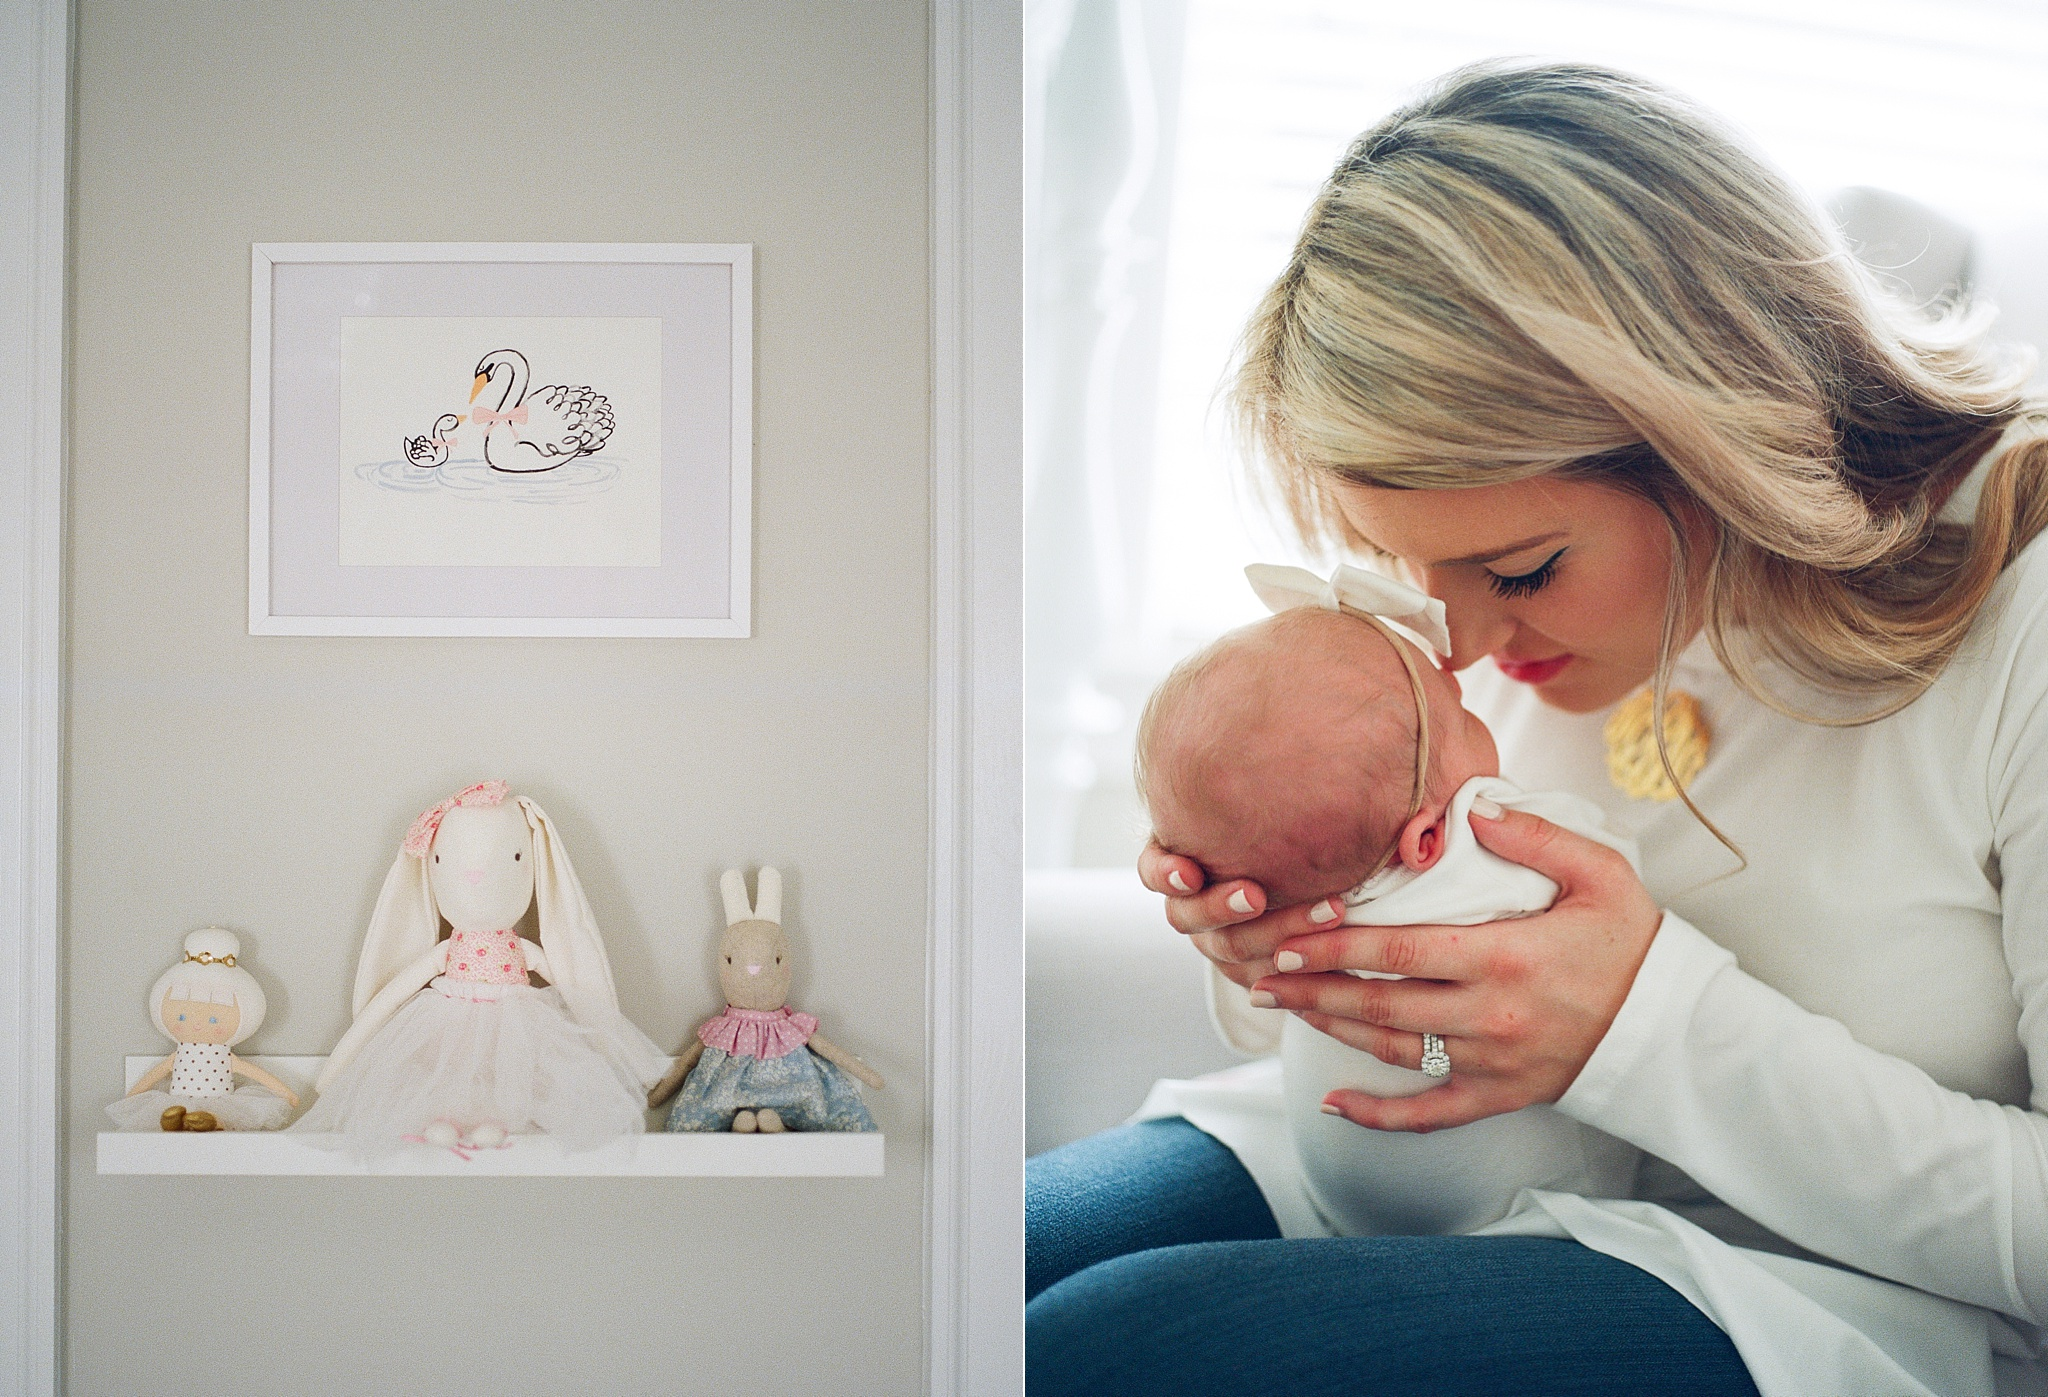 mcdonough-georgia-newborn-film-photographer-morgan-bullard-9.jpg